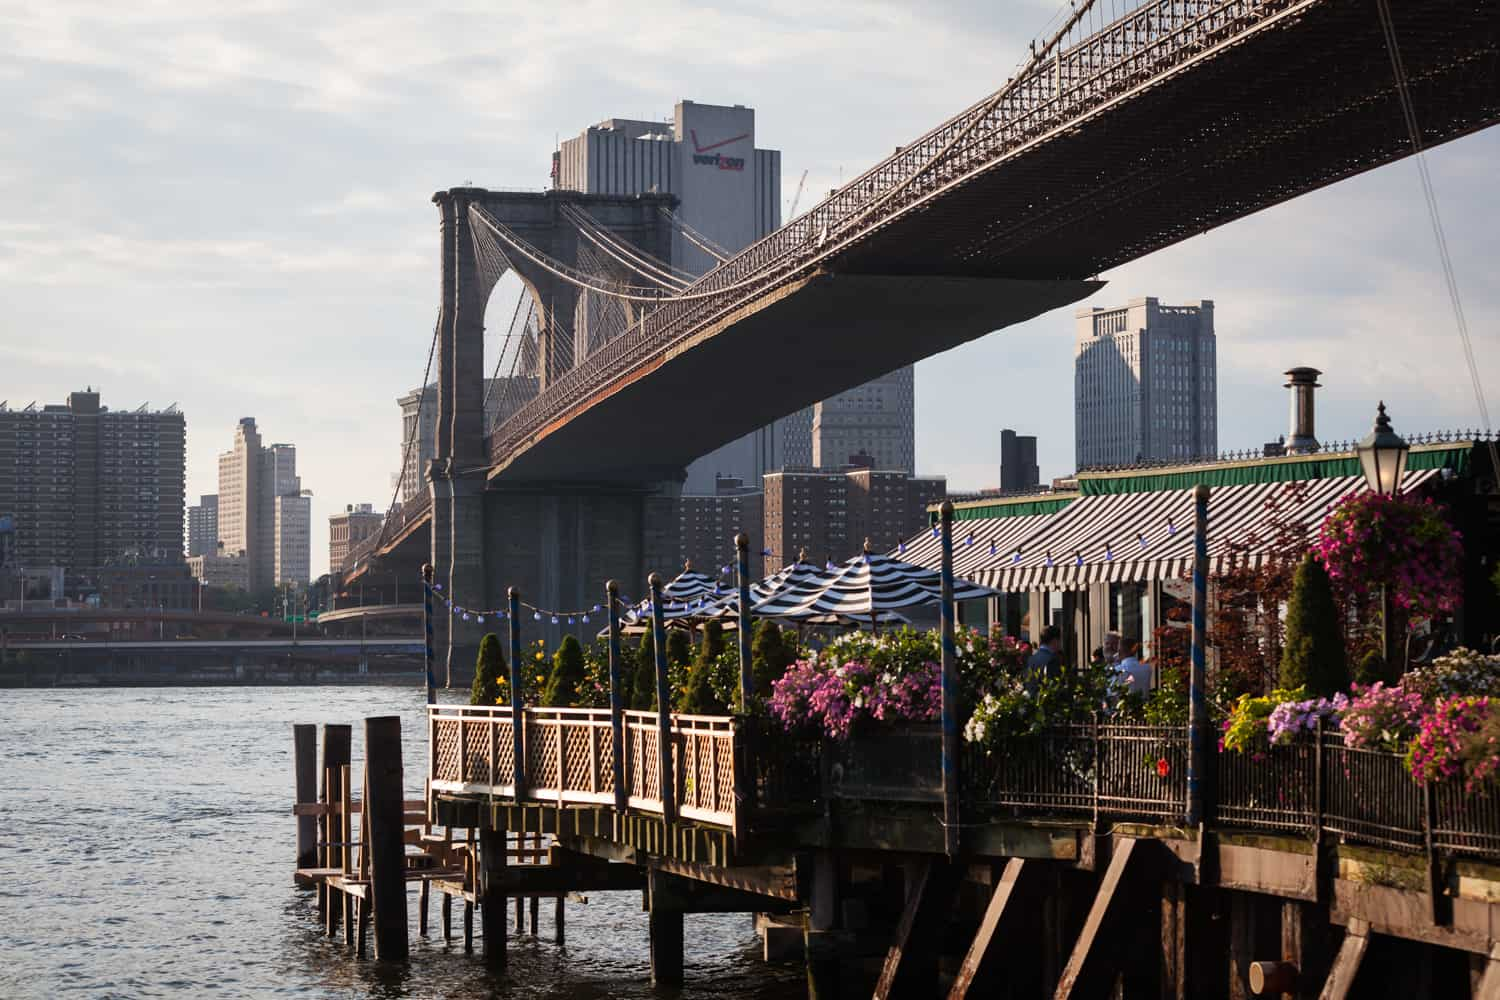 Exterior view of The River Cafe and Brooklyn Bridge